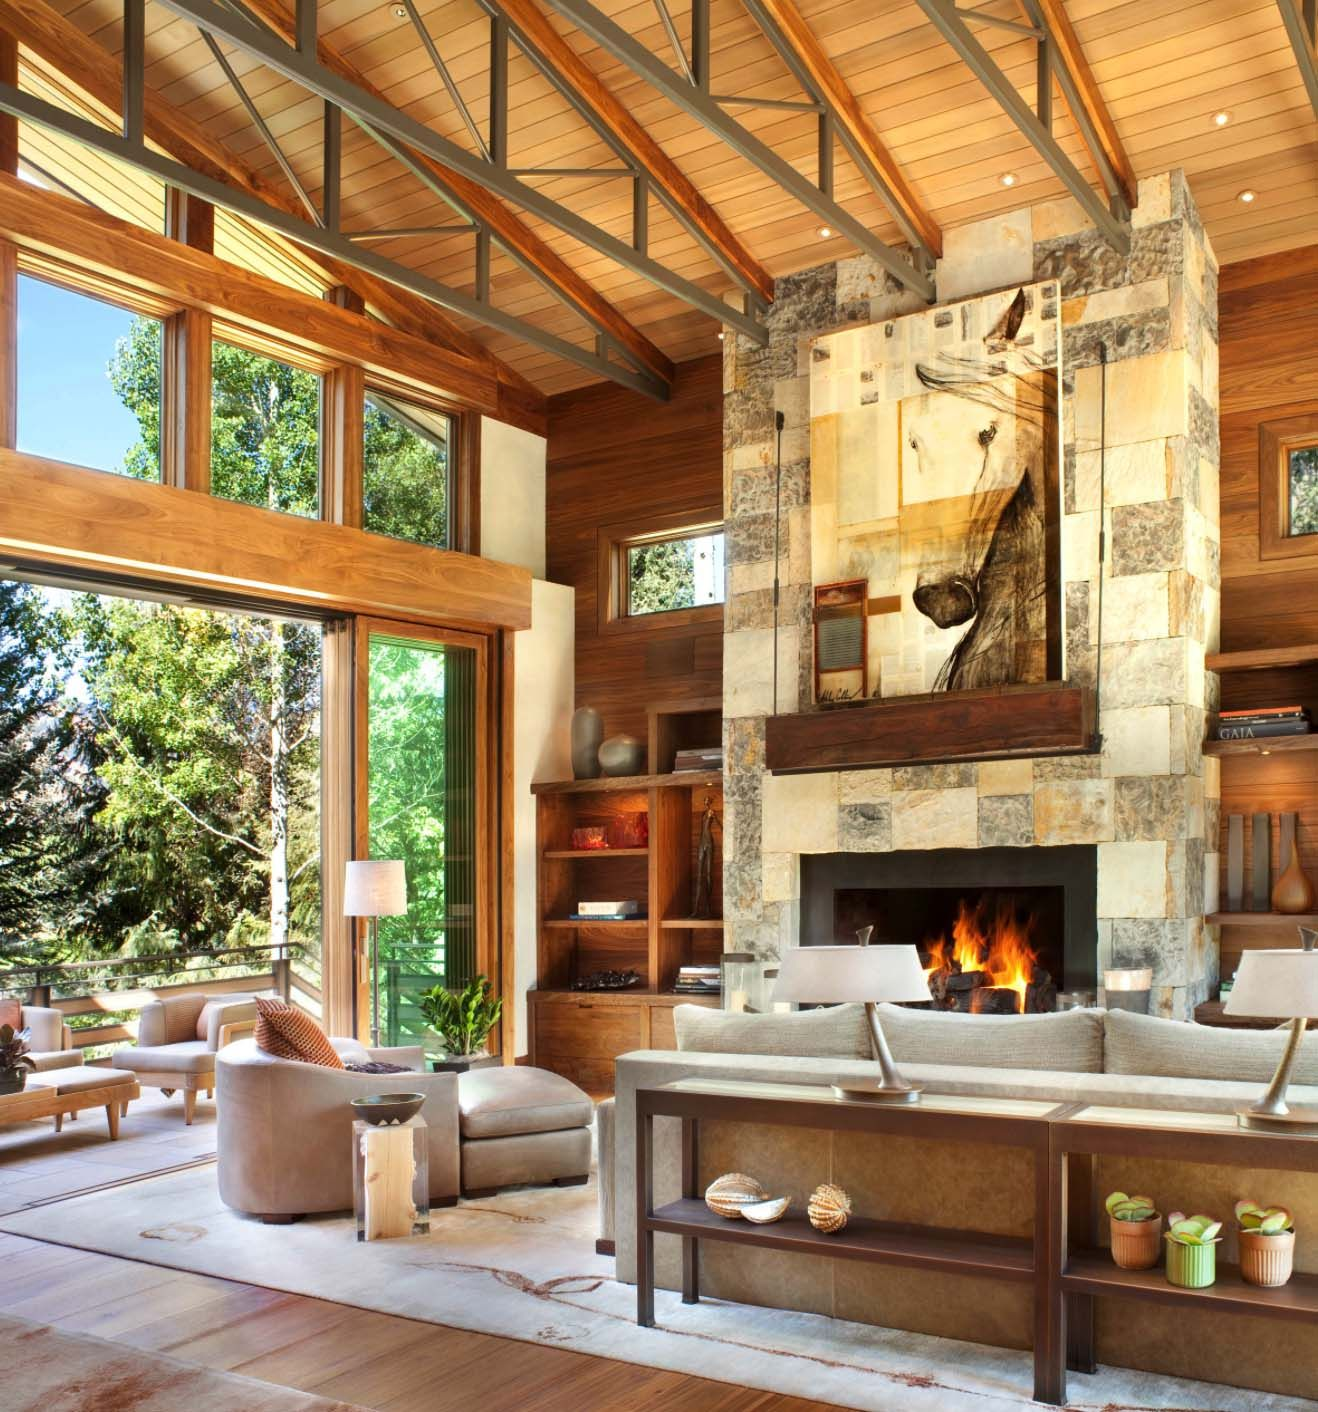 Captivating Modern Rustic Home In The Colorado Mountains